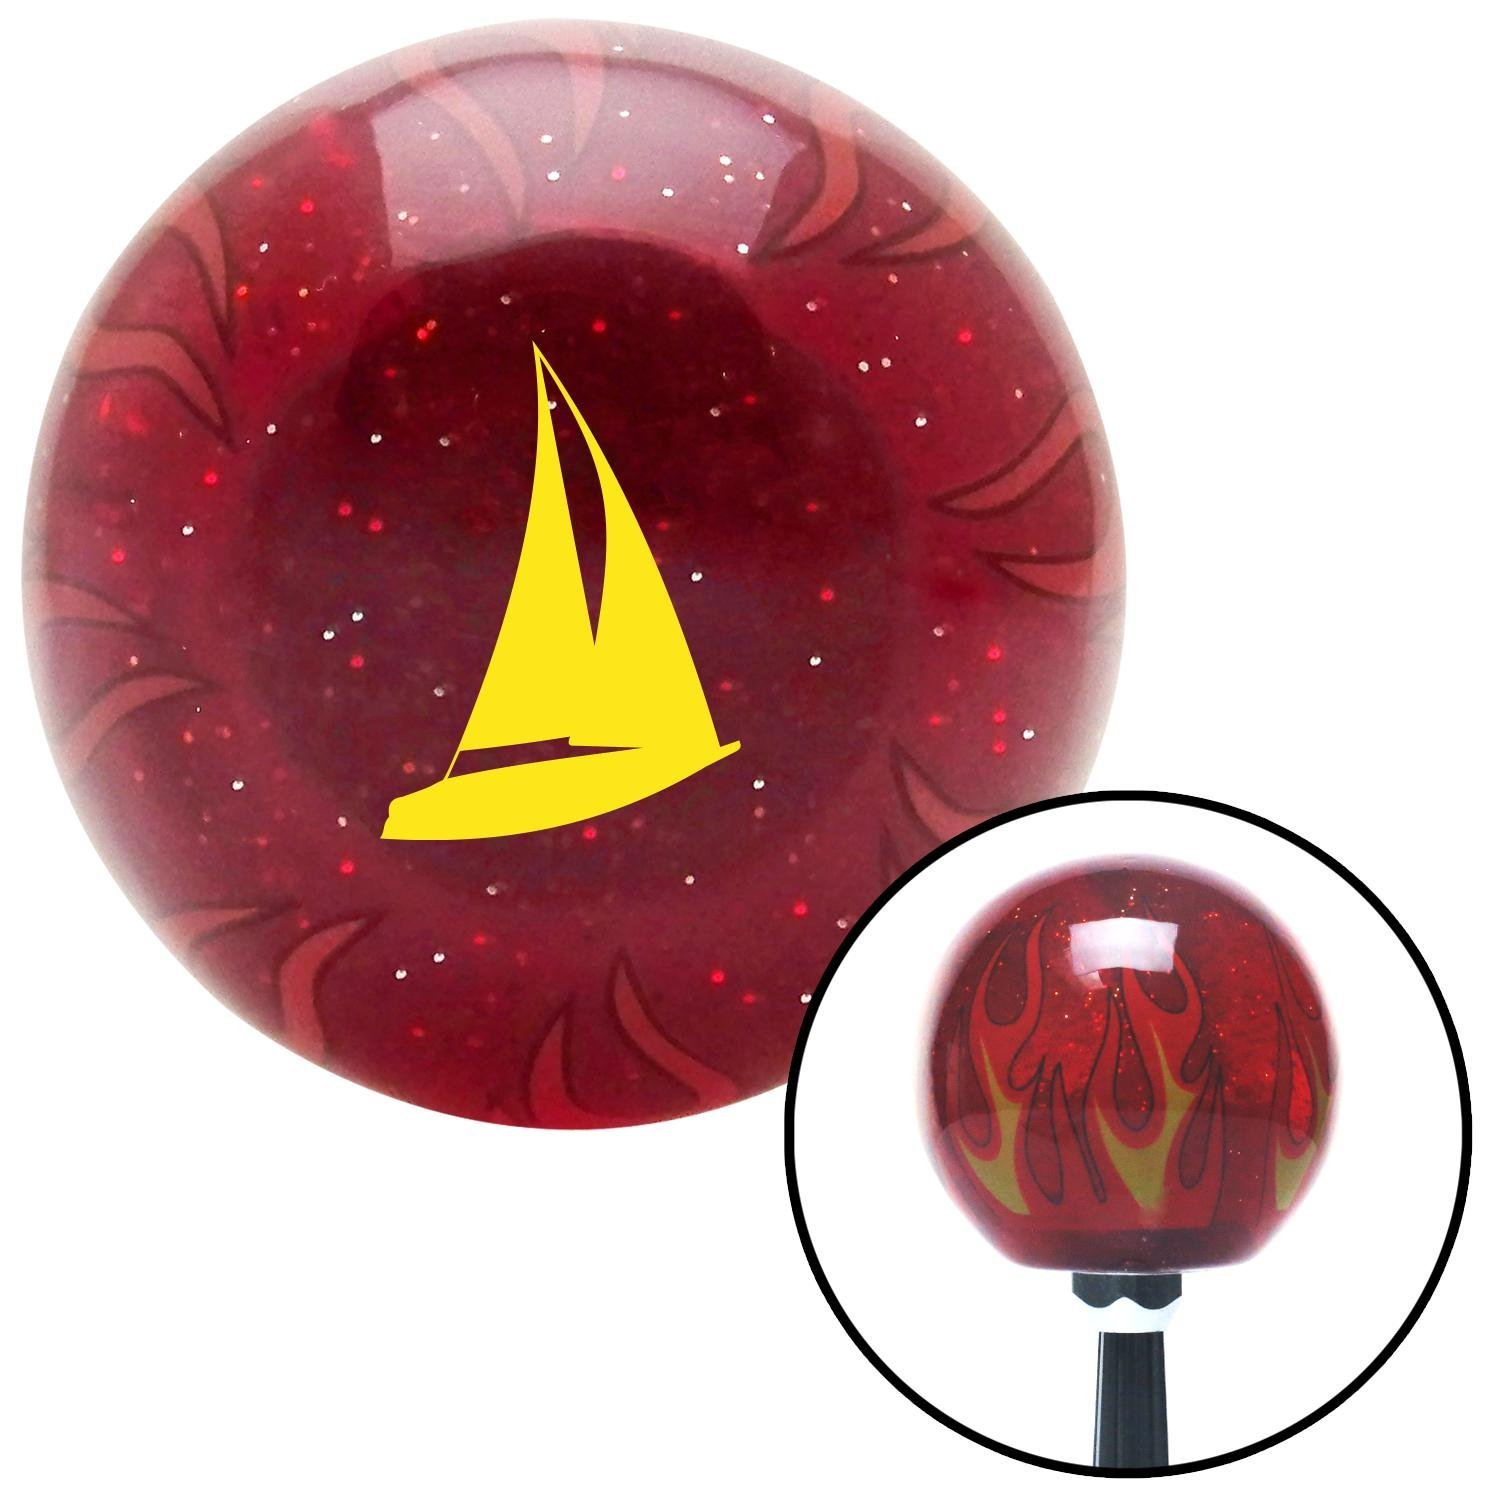 American Shifter 240783 Red Flame Metal Flake Shift Knob with M16 x 1.5 Insert Yellow Sail Boat